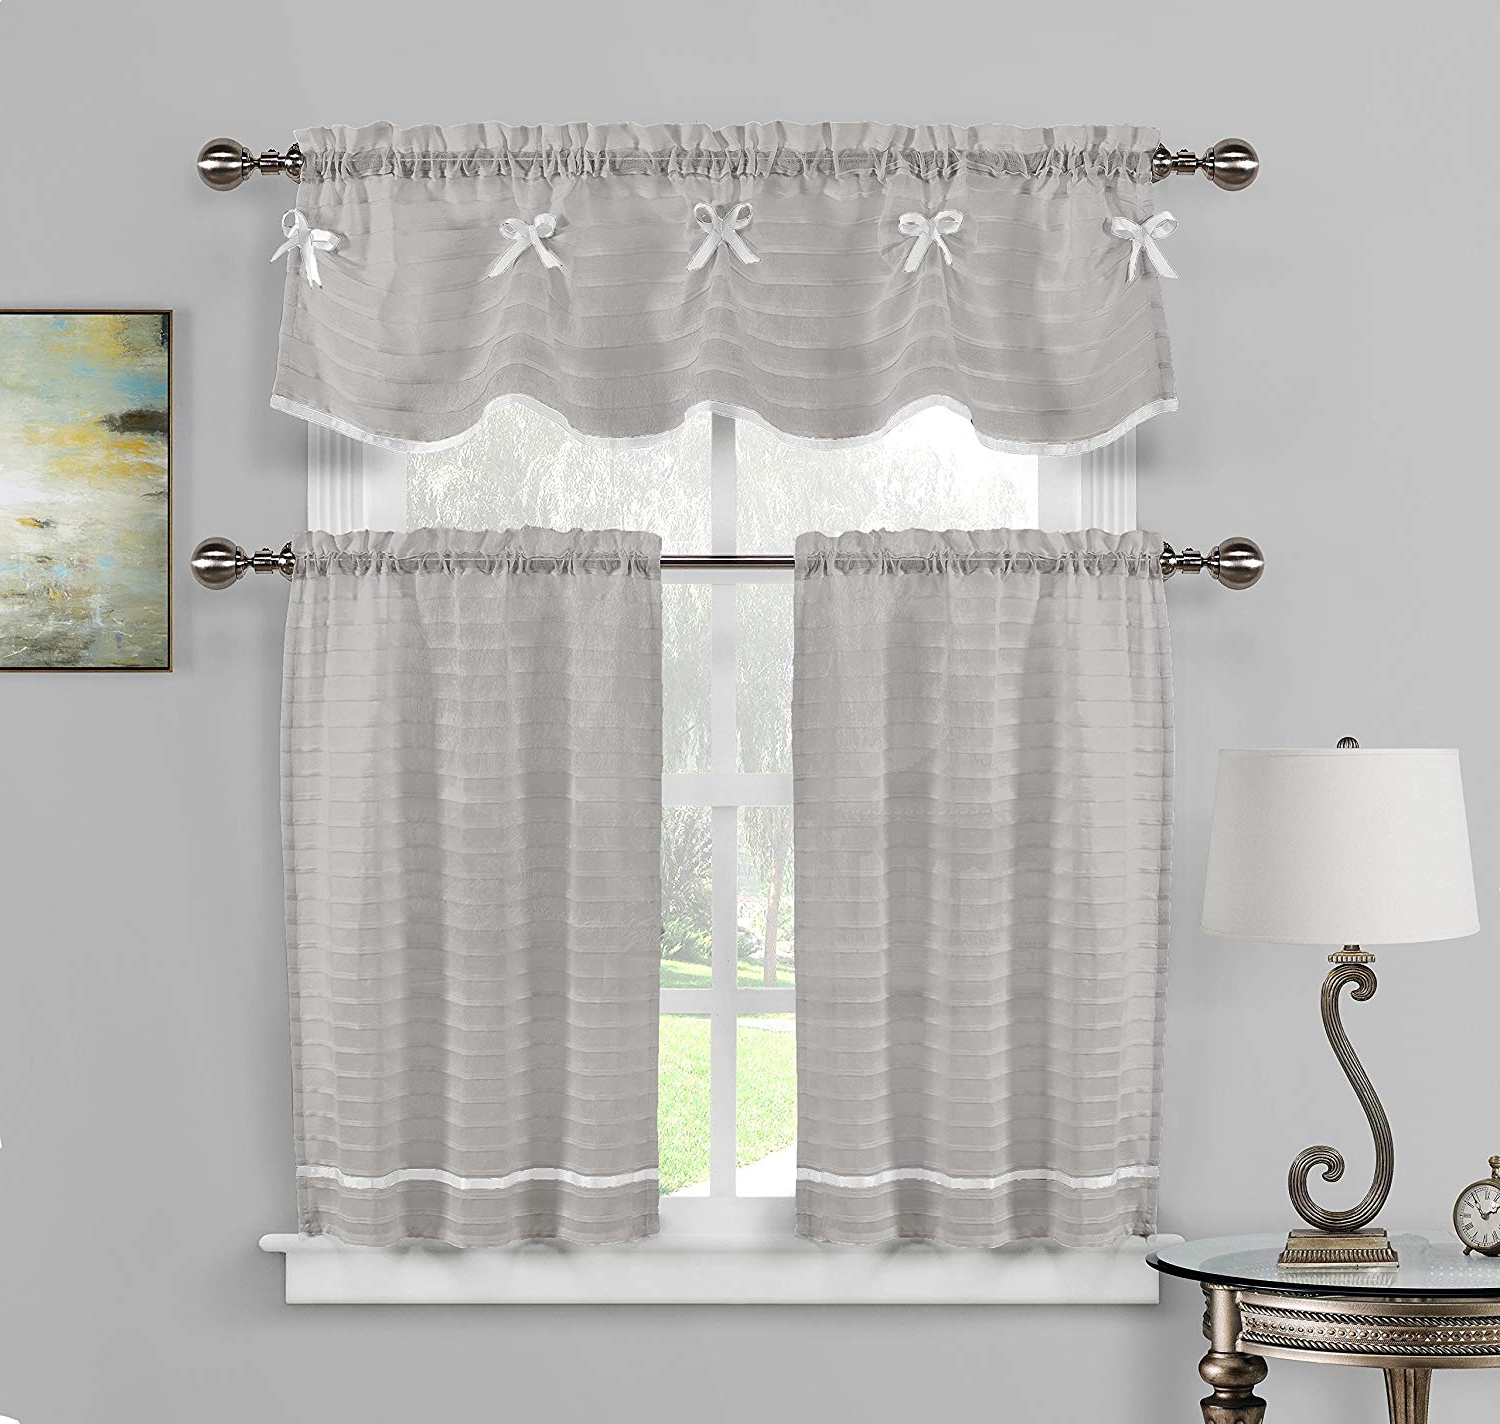 Most Up To Date Pleated Curtain Tiers With 3 Pc Sheer Window Curtain Set: Pleated Stripes With Ribbon, 1 Valance 2 Tiers (Gray White) (Gallery 4 of 20)